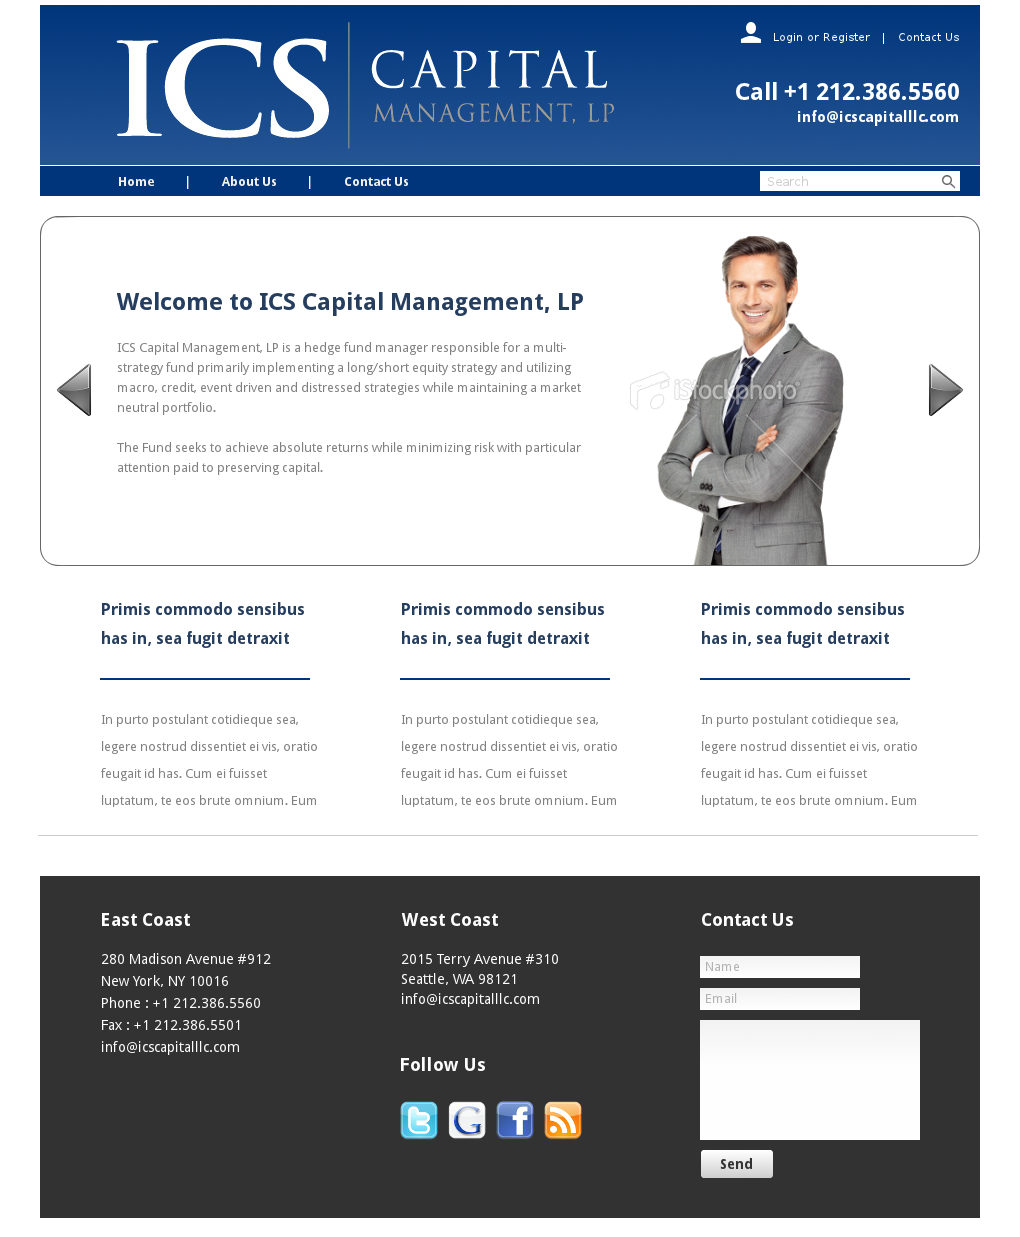 Elegant Professional Investment Web Design For A Company By Relativiteit Design 939454